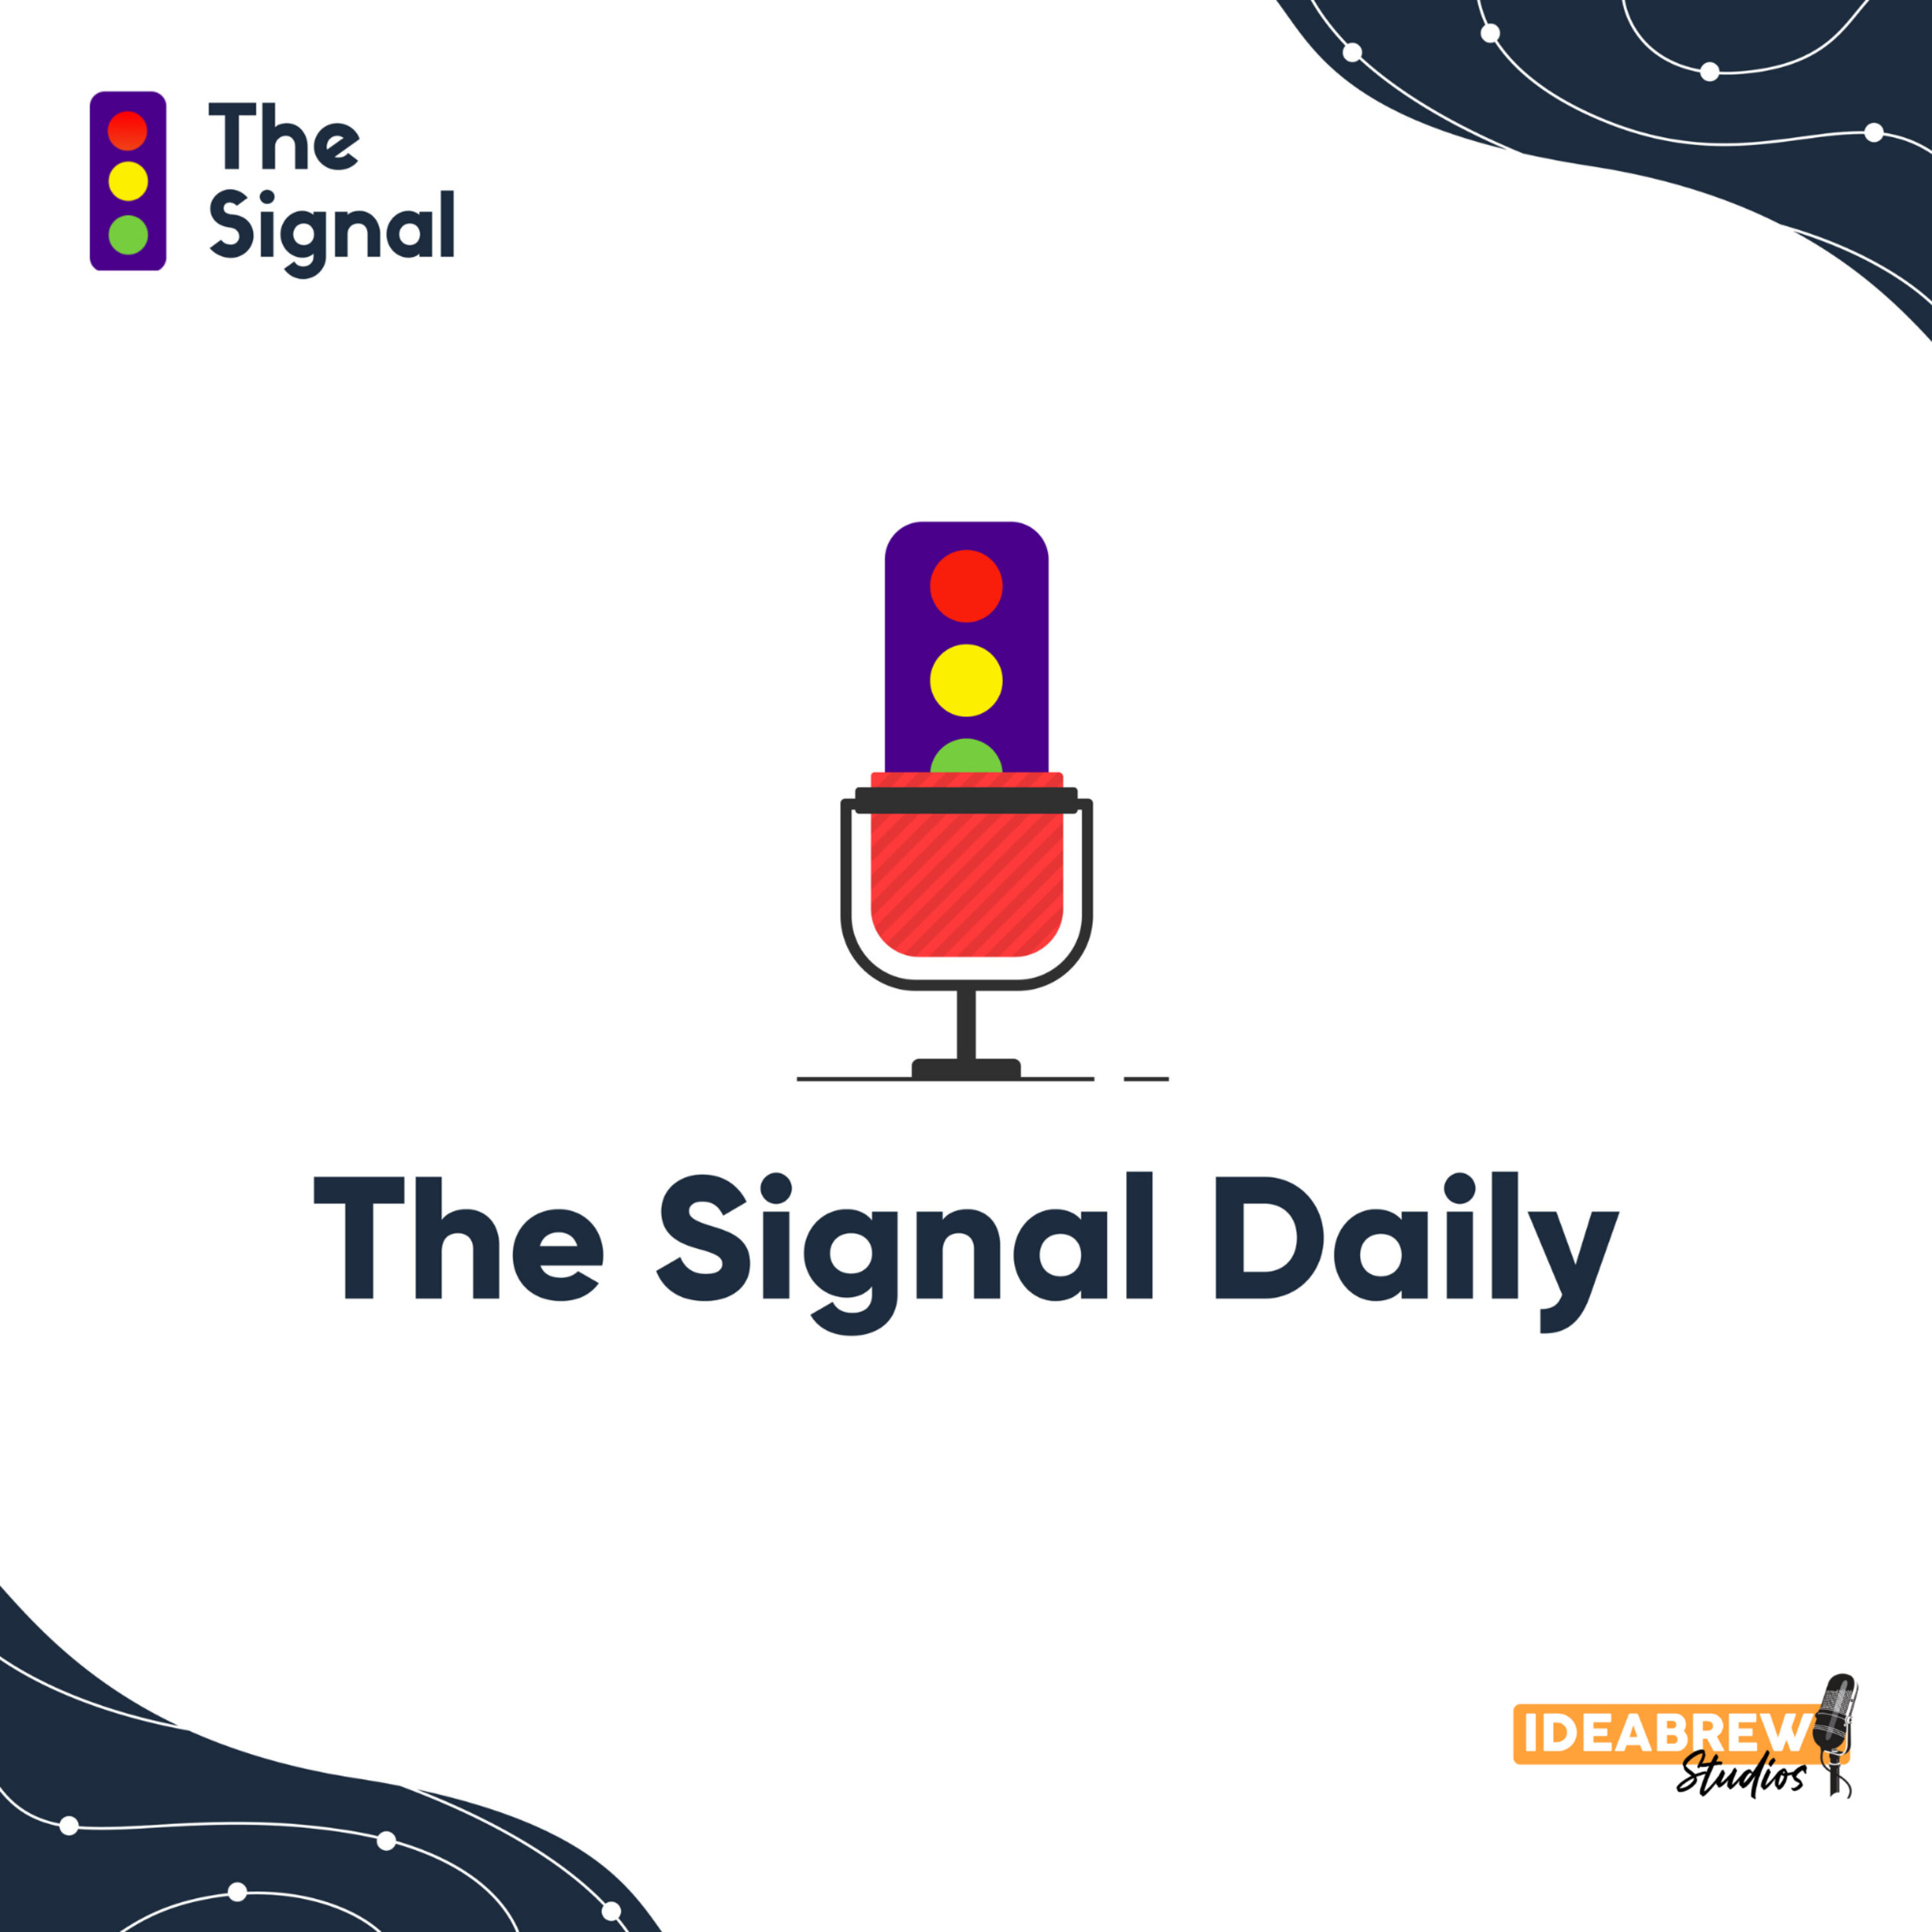 The Signal Daily